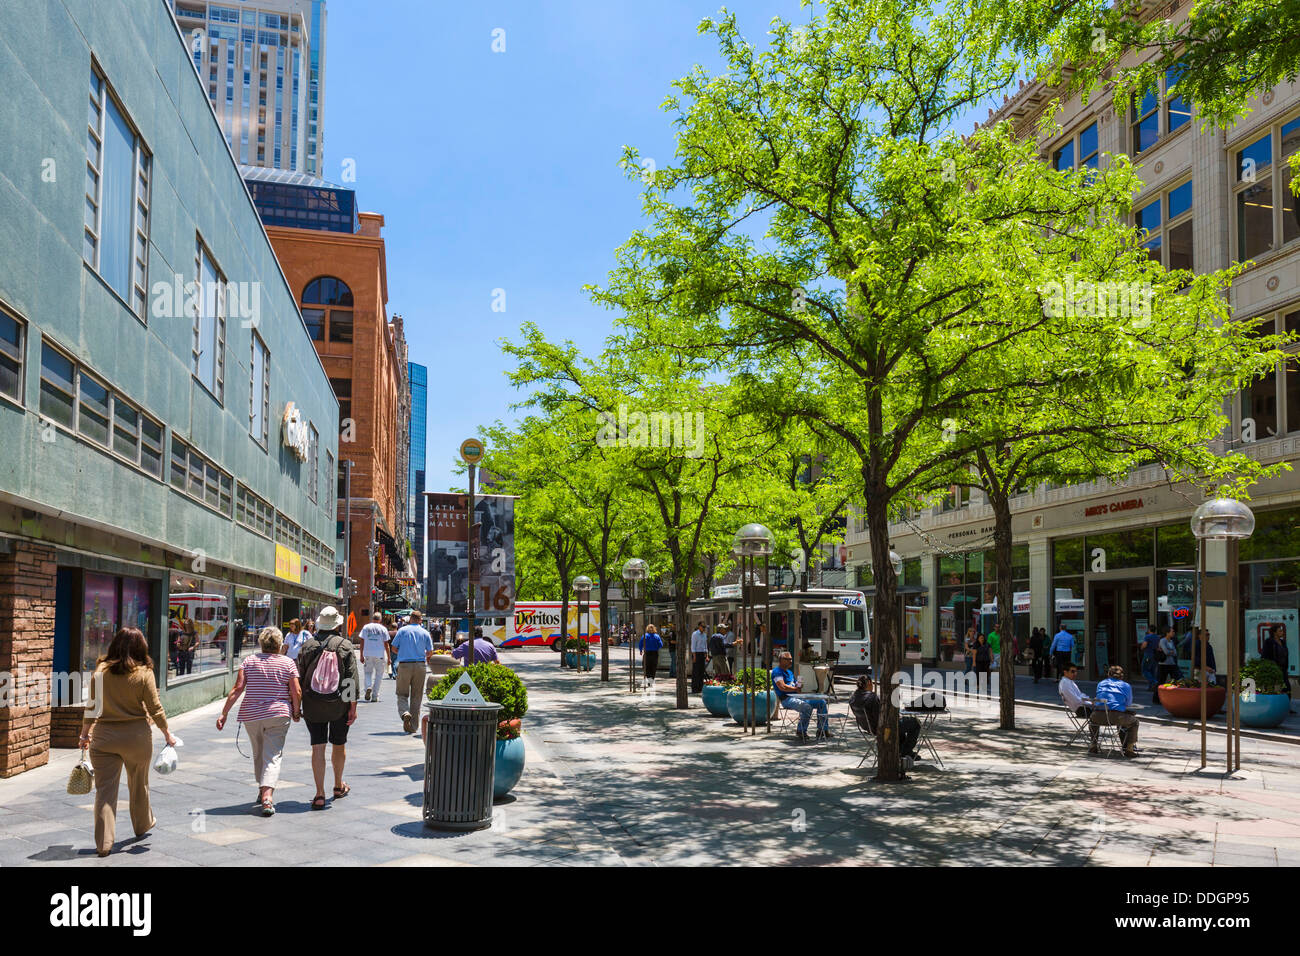 Shoppers on the pedestrianised 16th Street Mall in downtown Denver, Colorado, USA - Stock Image